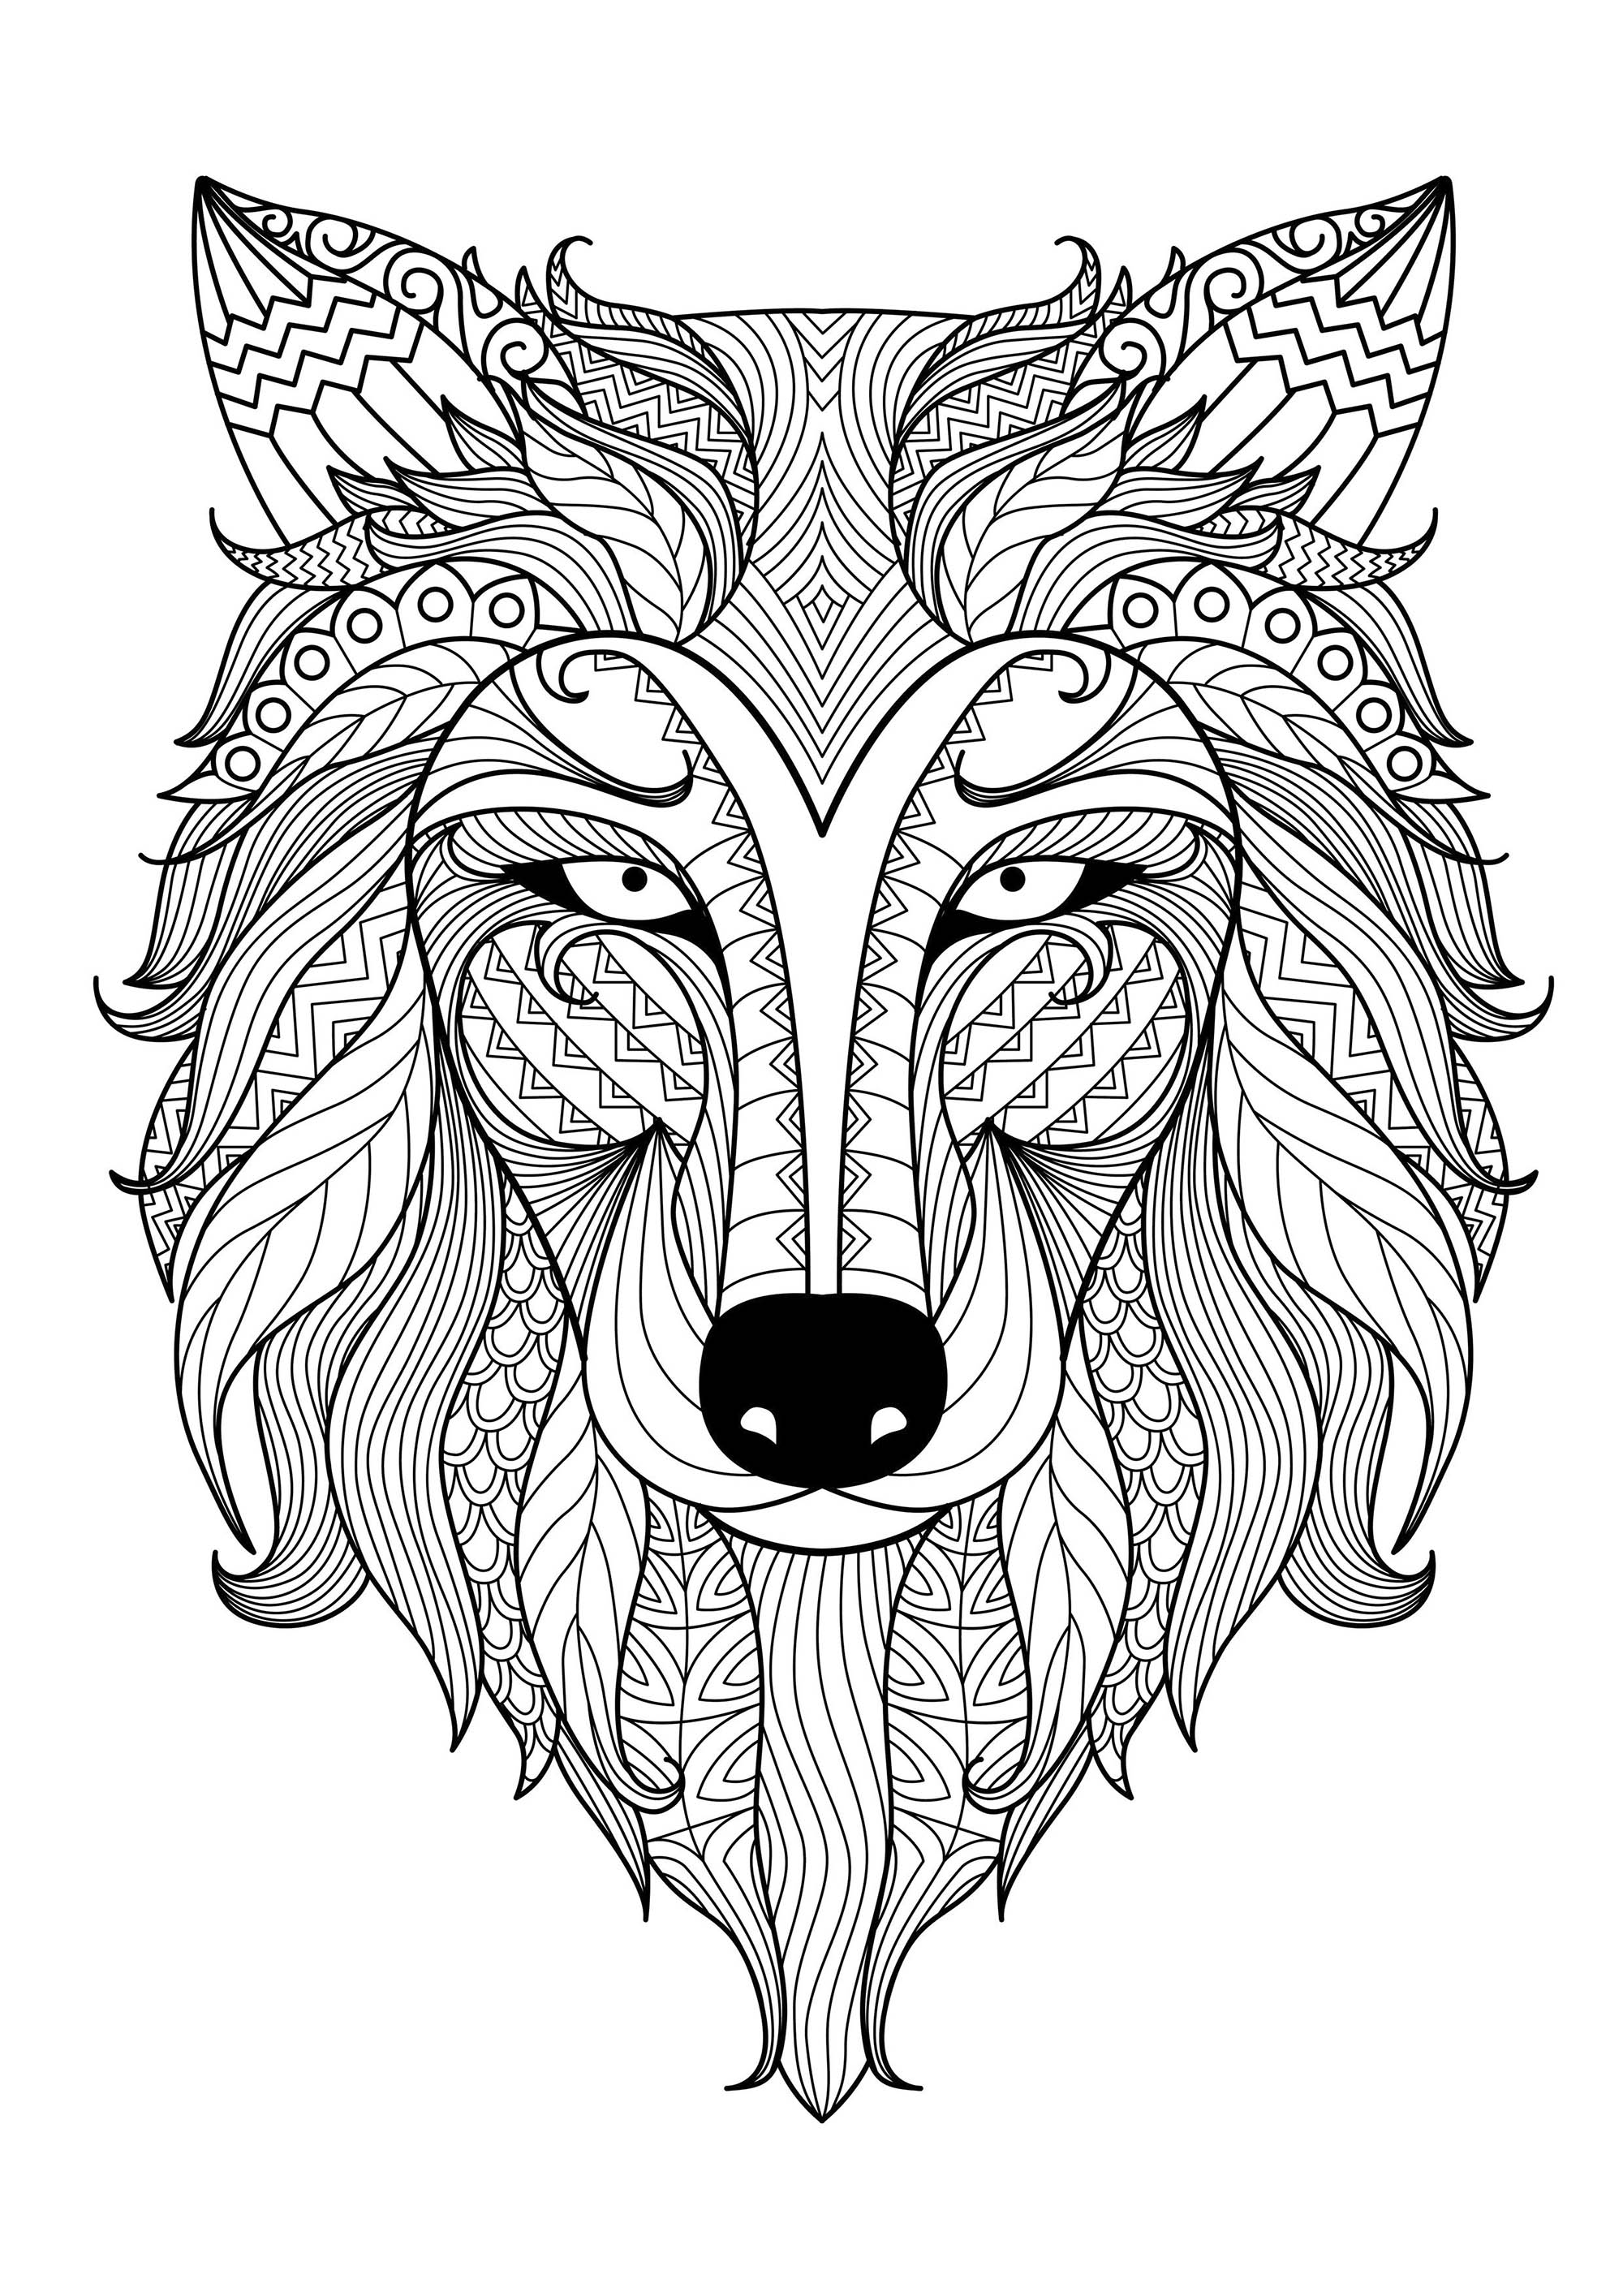 wolf coloring pages for adults wolf 3 wolves adult coloring pages coloring wolf pages adults for